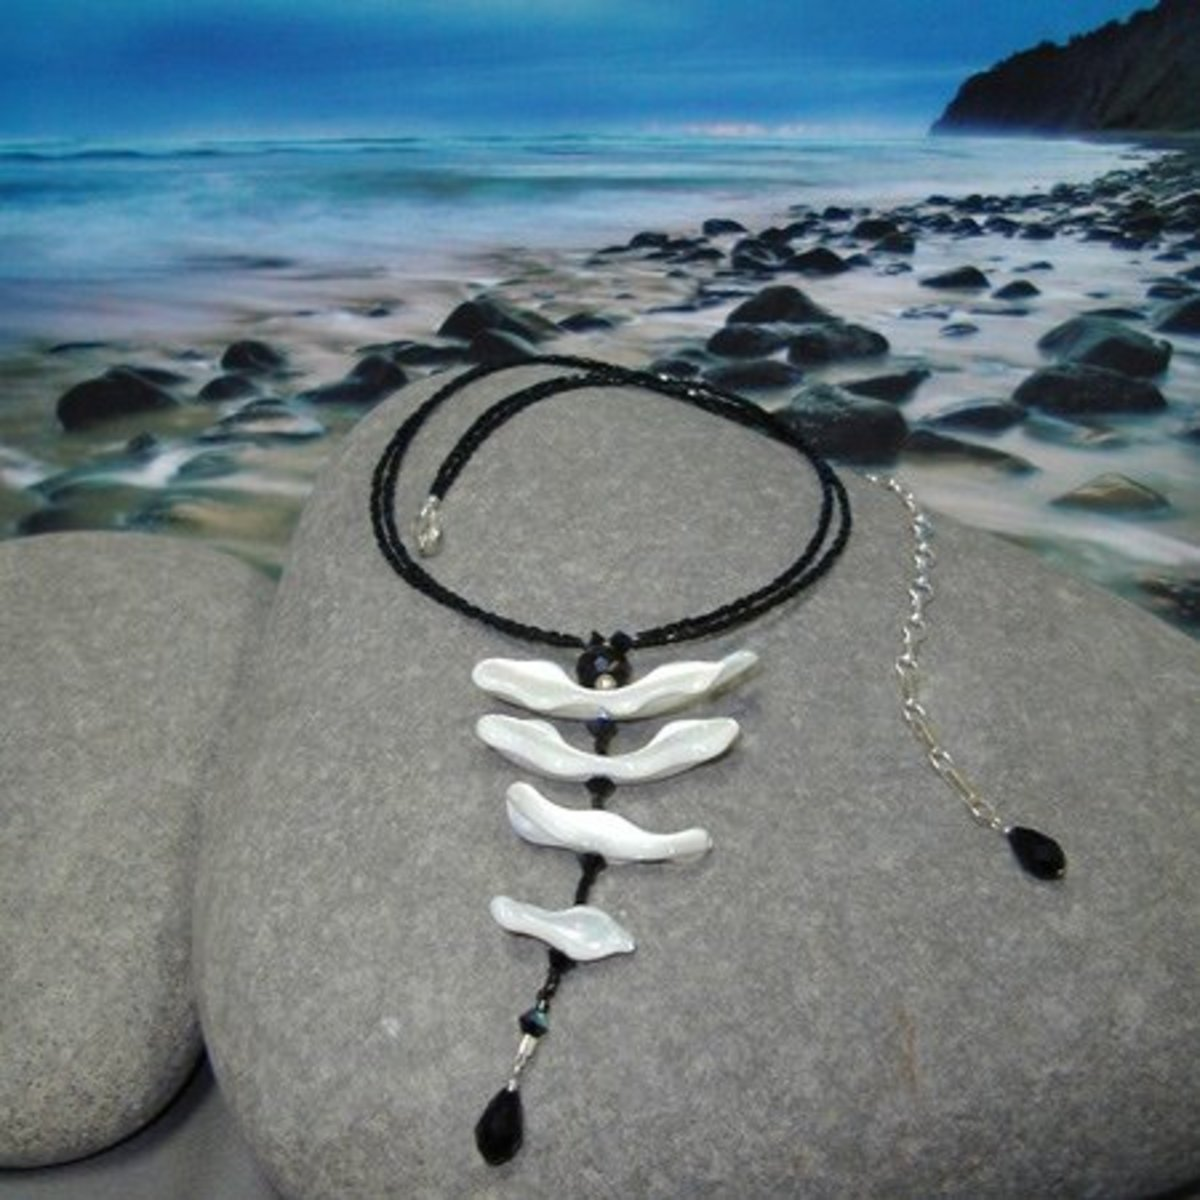 Sea shells can be used to make unique and beautiful jewellery pieces.